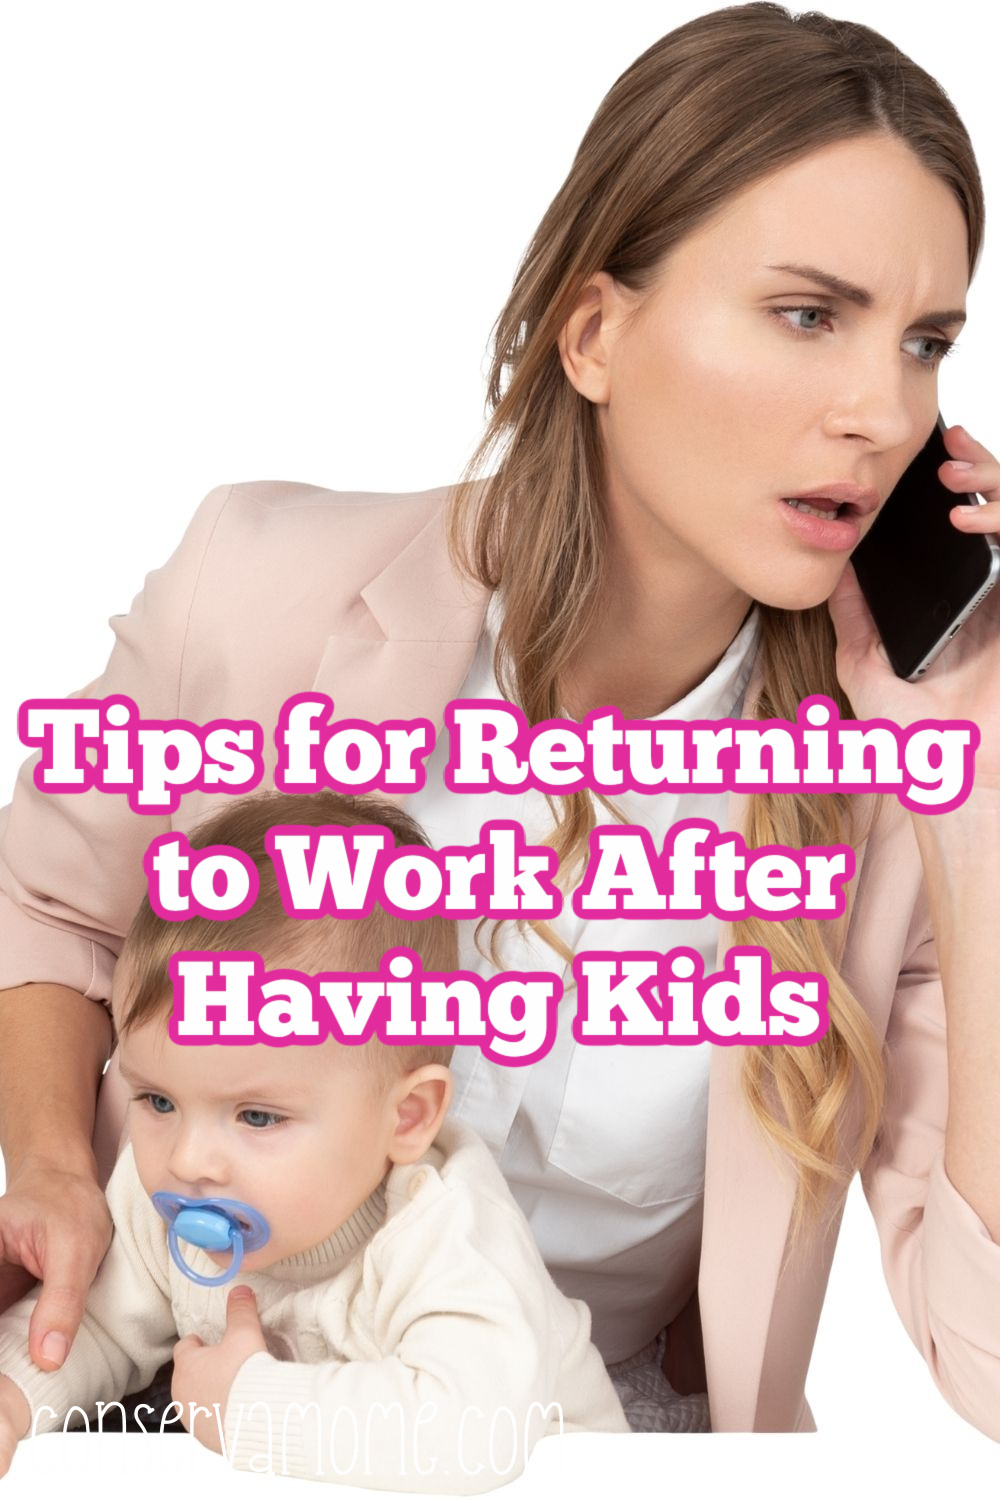 Tips for Returning to Work After Having Kids